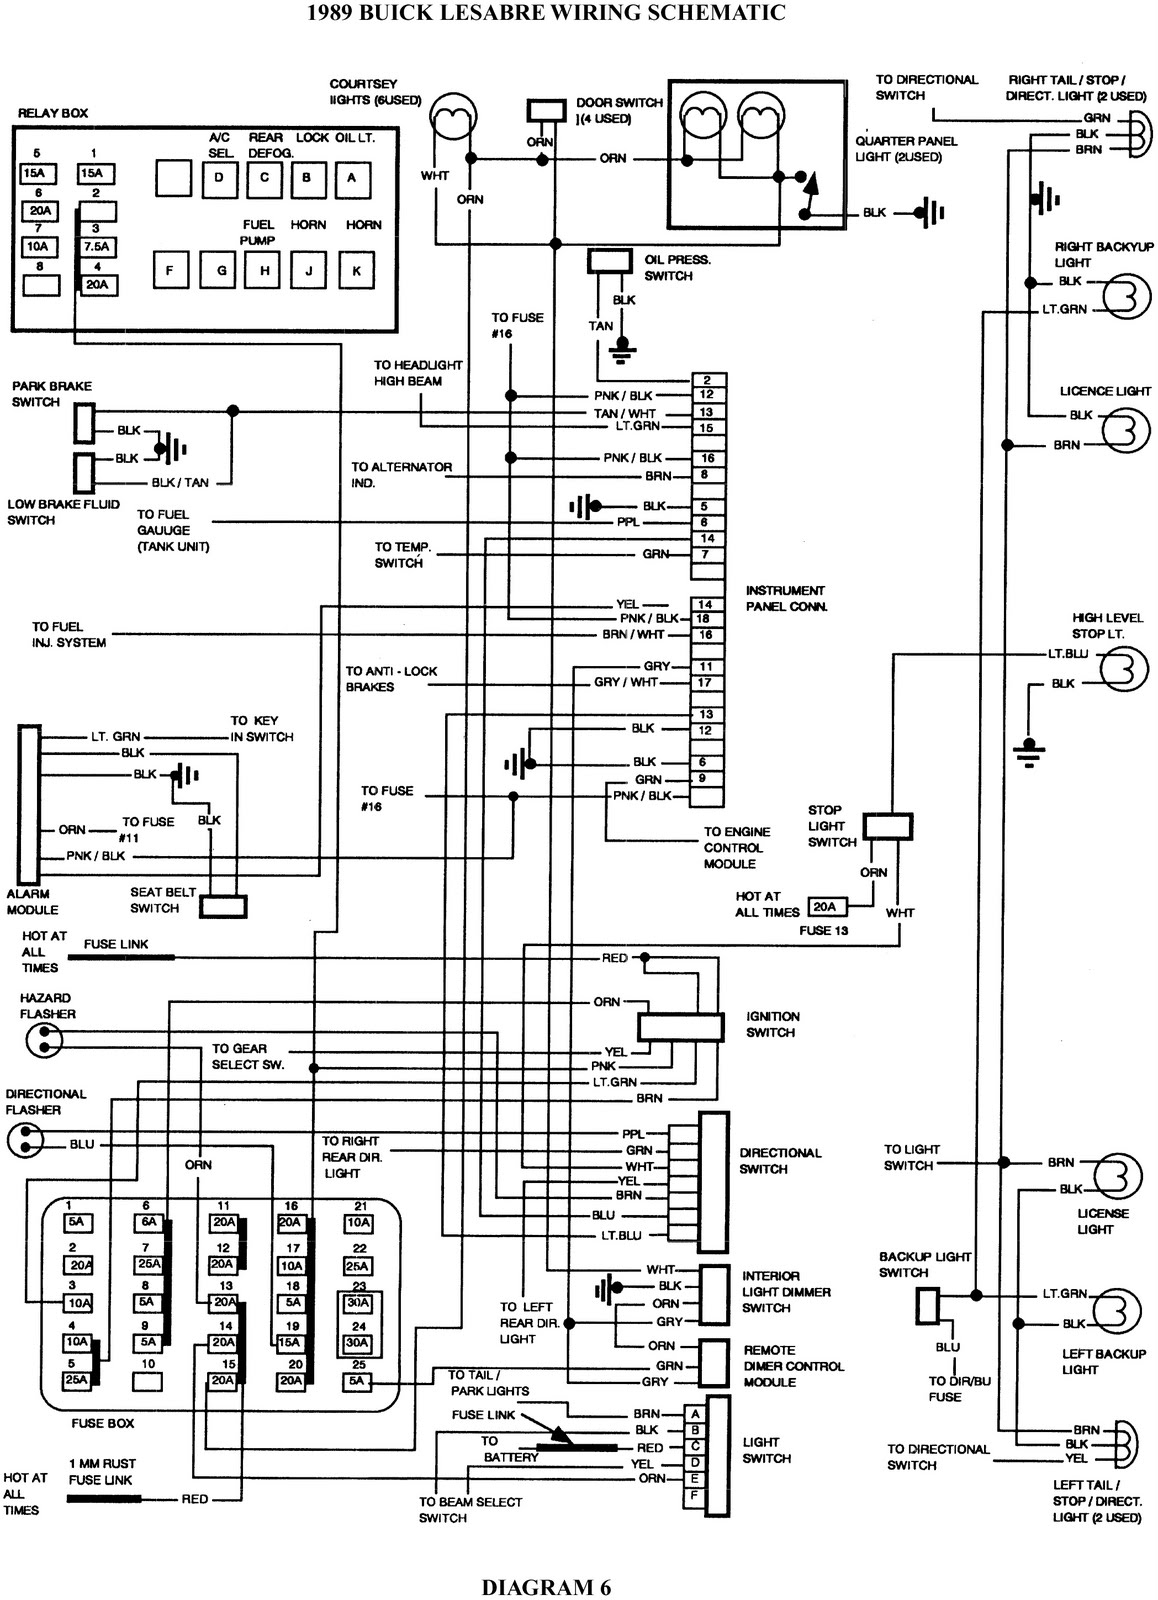 122965 Where Ocr Relay moreover Honda Accord Parts Data in addition Buick Transmission Diagram besides 1991 Buick Park Avenue Wiring Diagram together with 2hp2z Buick Lesabre 1998 Won T Start Won T Turn. on 1996 buick park avenue diagrams html